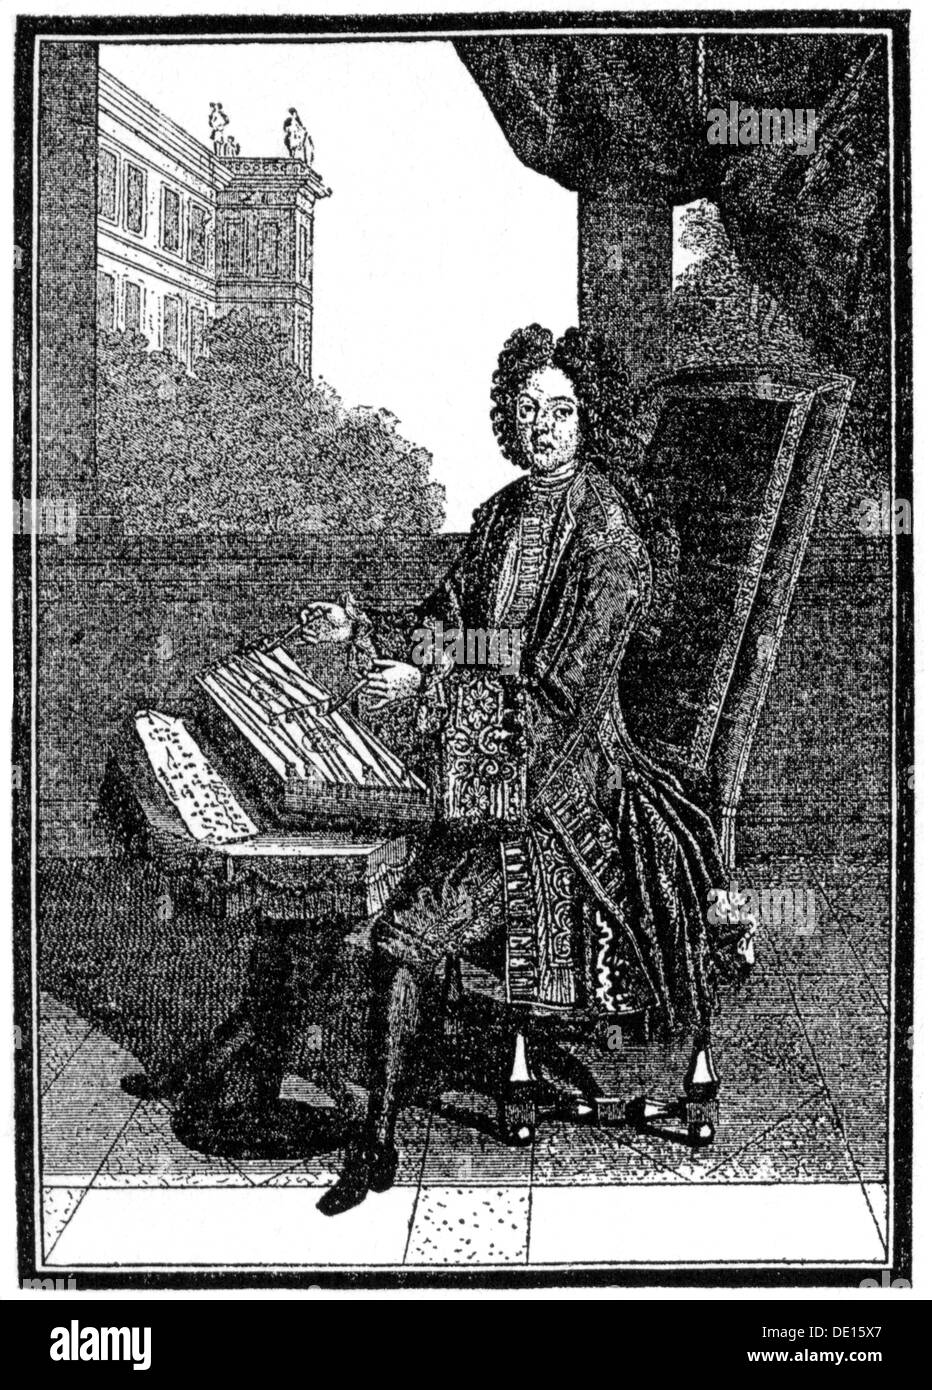 fashion 17th century aristocrat playing cimbalom copper engraving France second half 17th century 17th century graphic - Stock Image